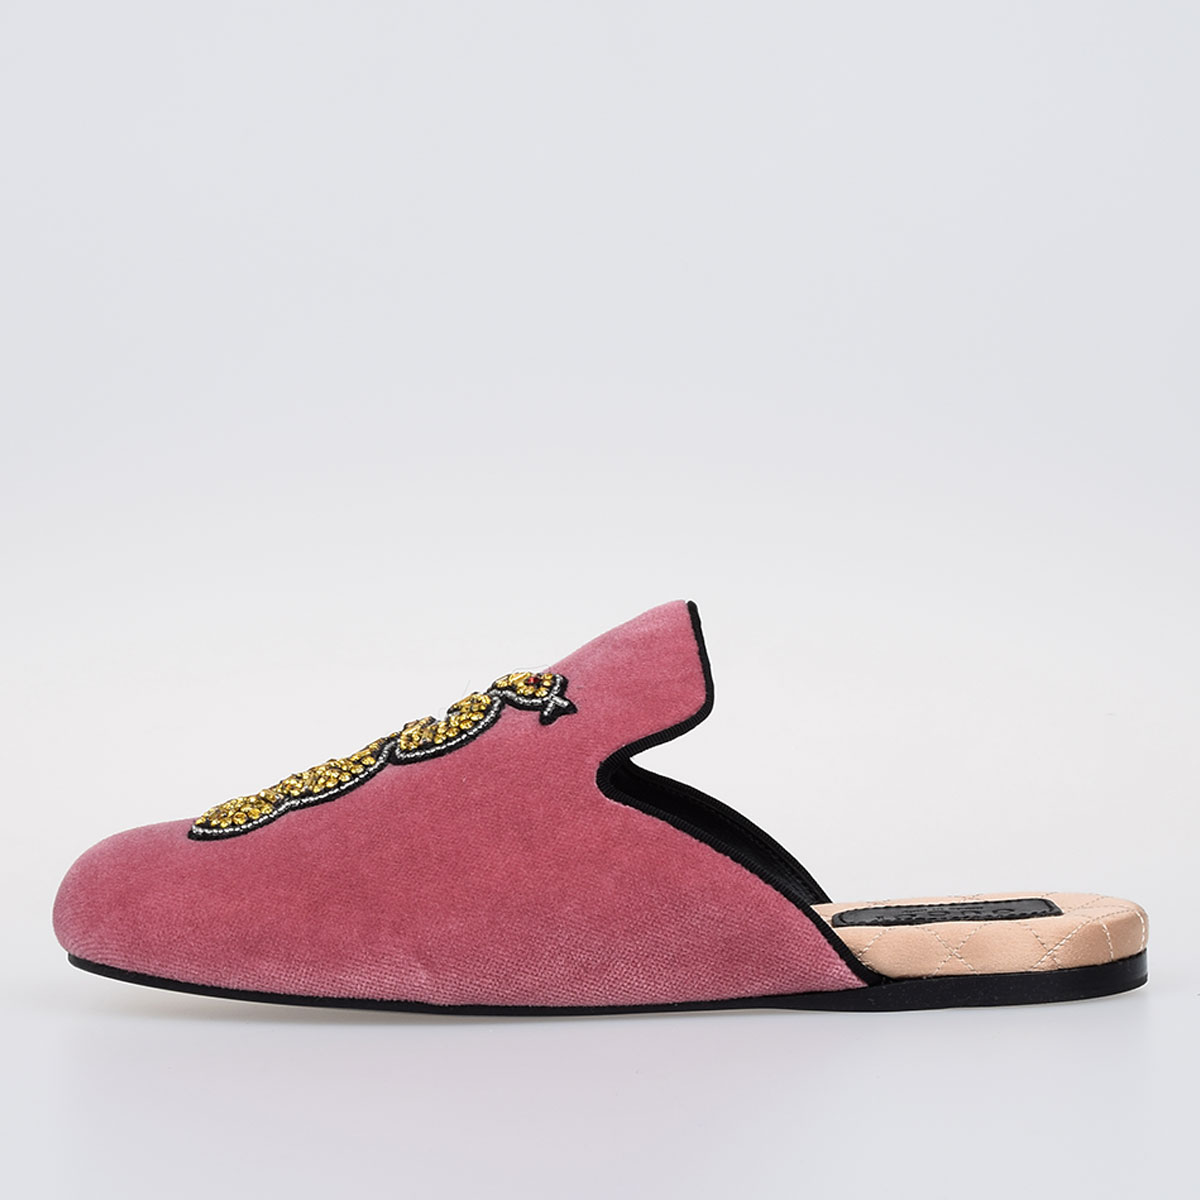 66c54995f26ffb Gucci Women Embroidery Velvet Slipper - Glamood Outlet